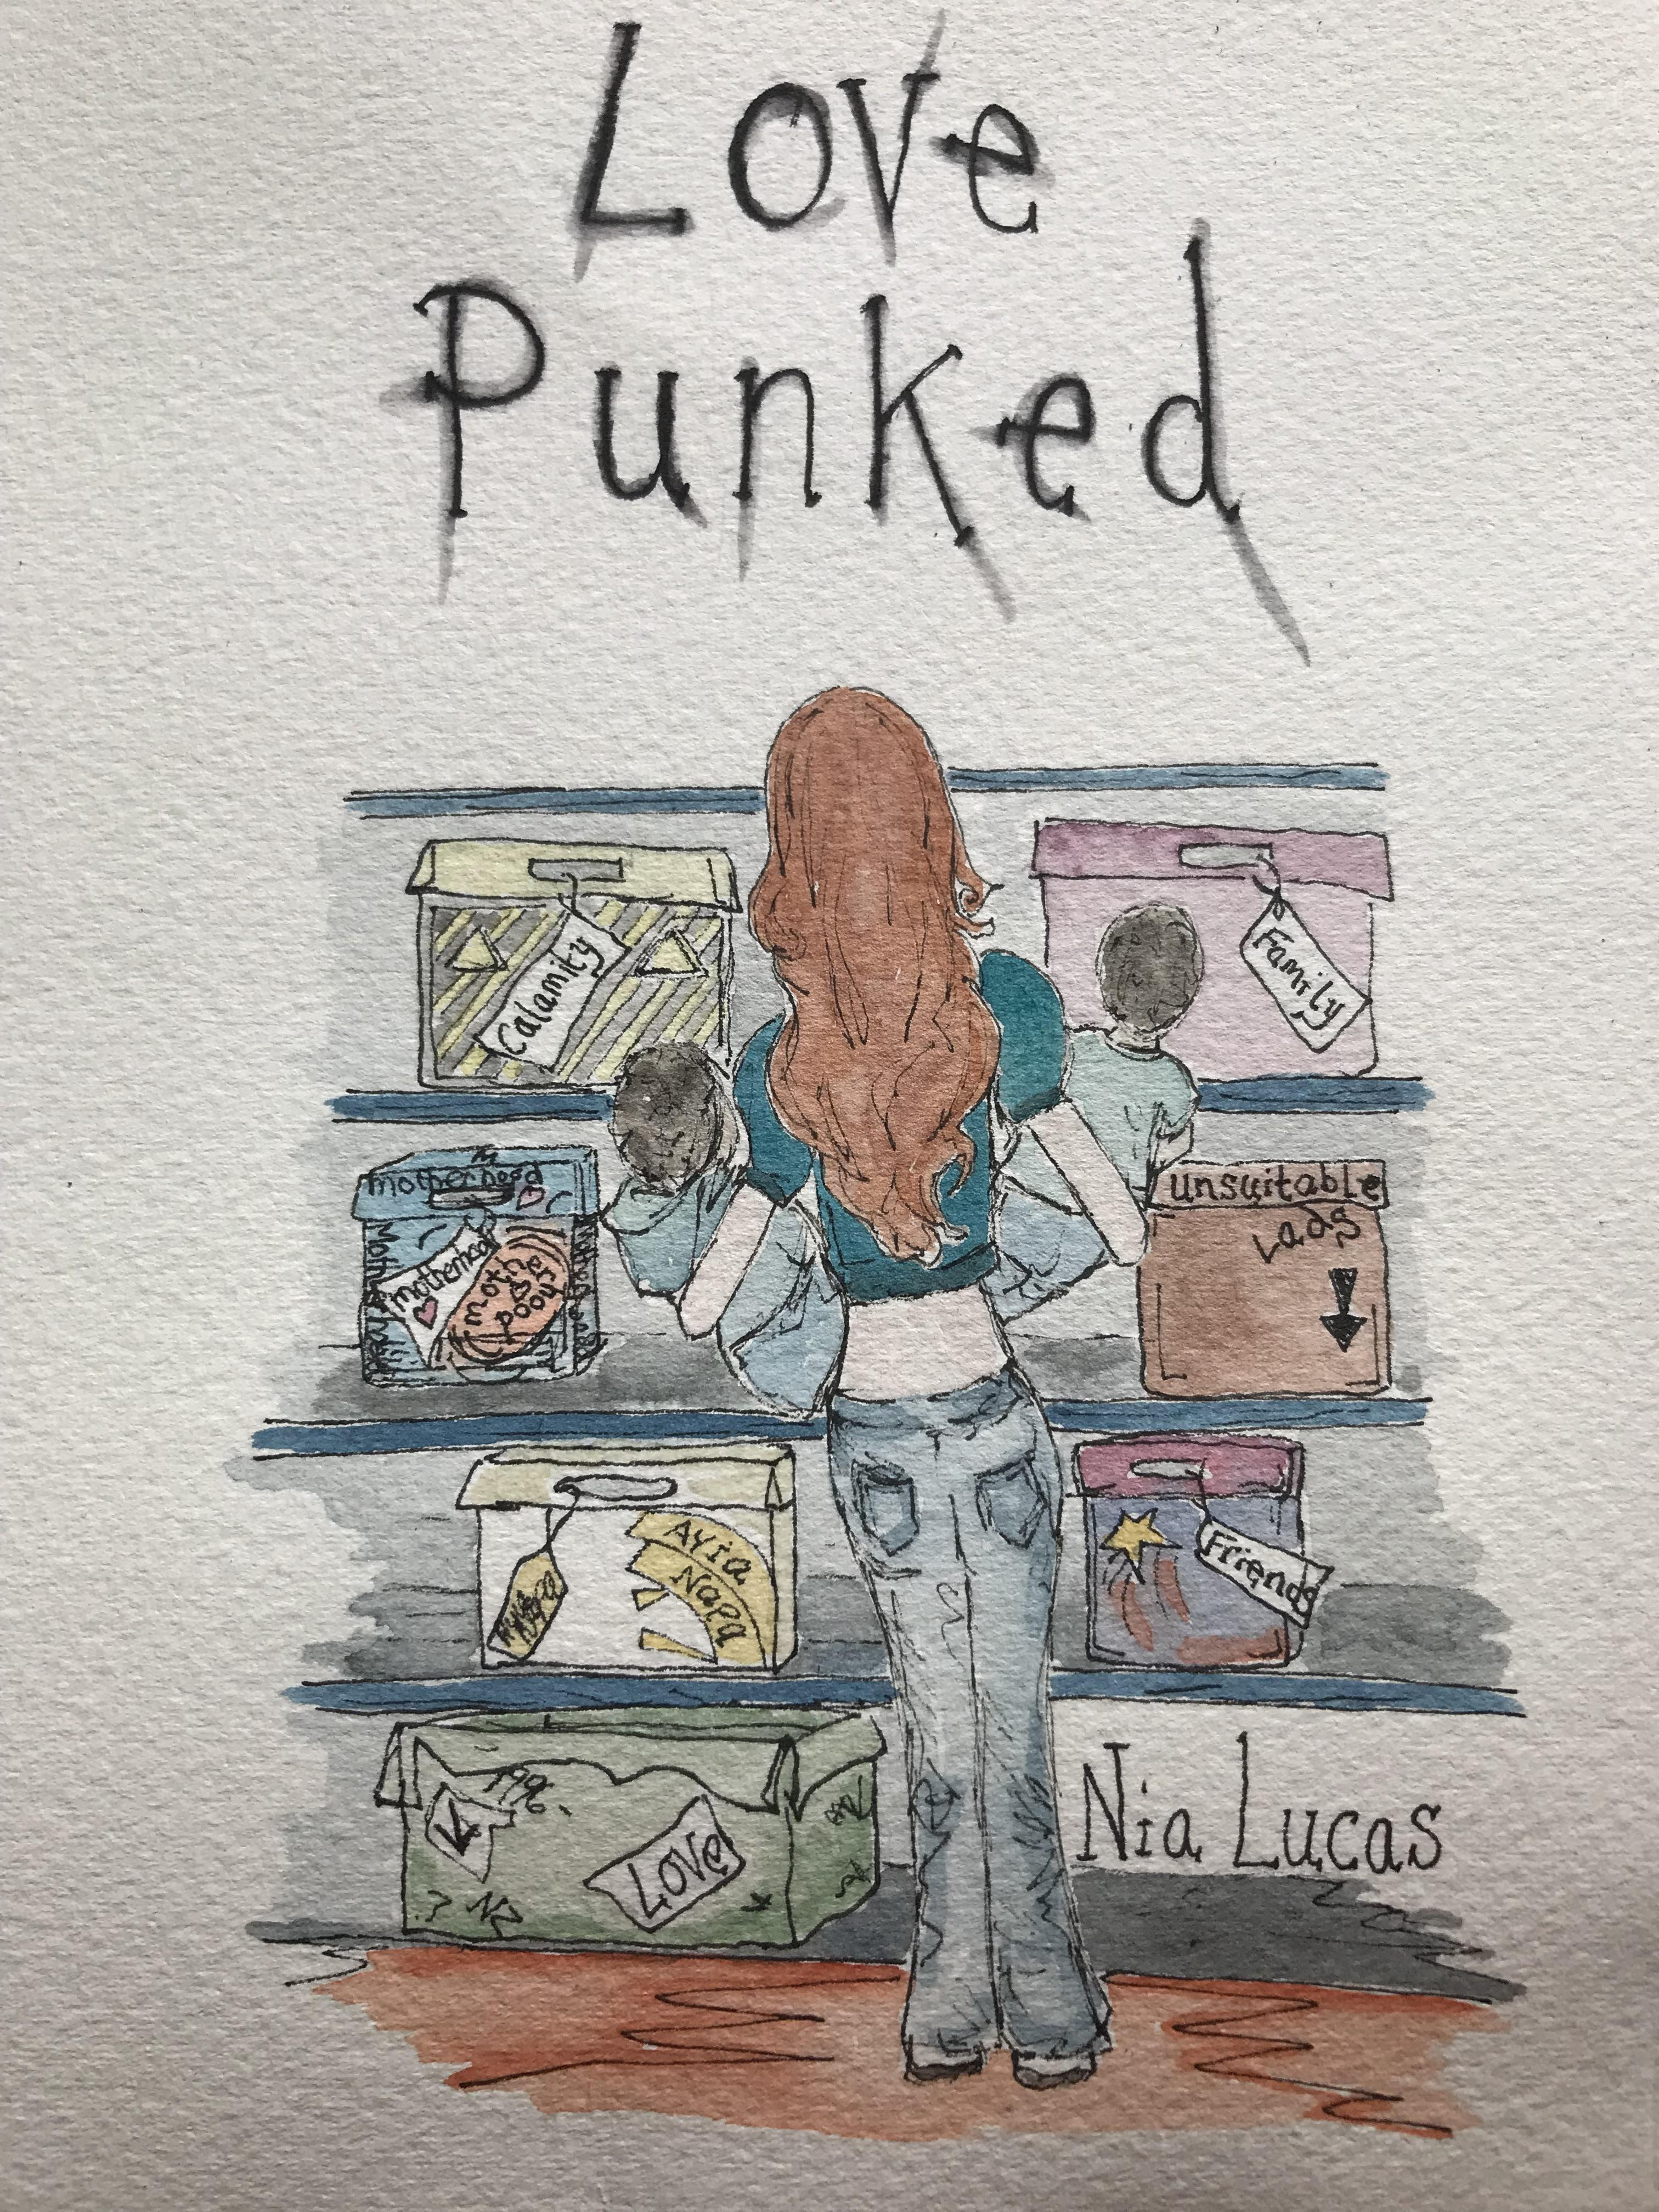 Love Punked Front cover.jpeg